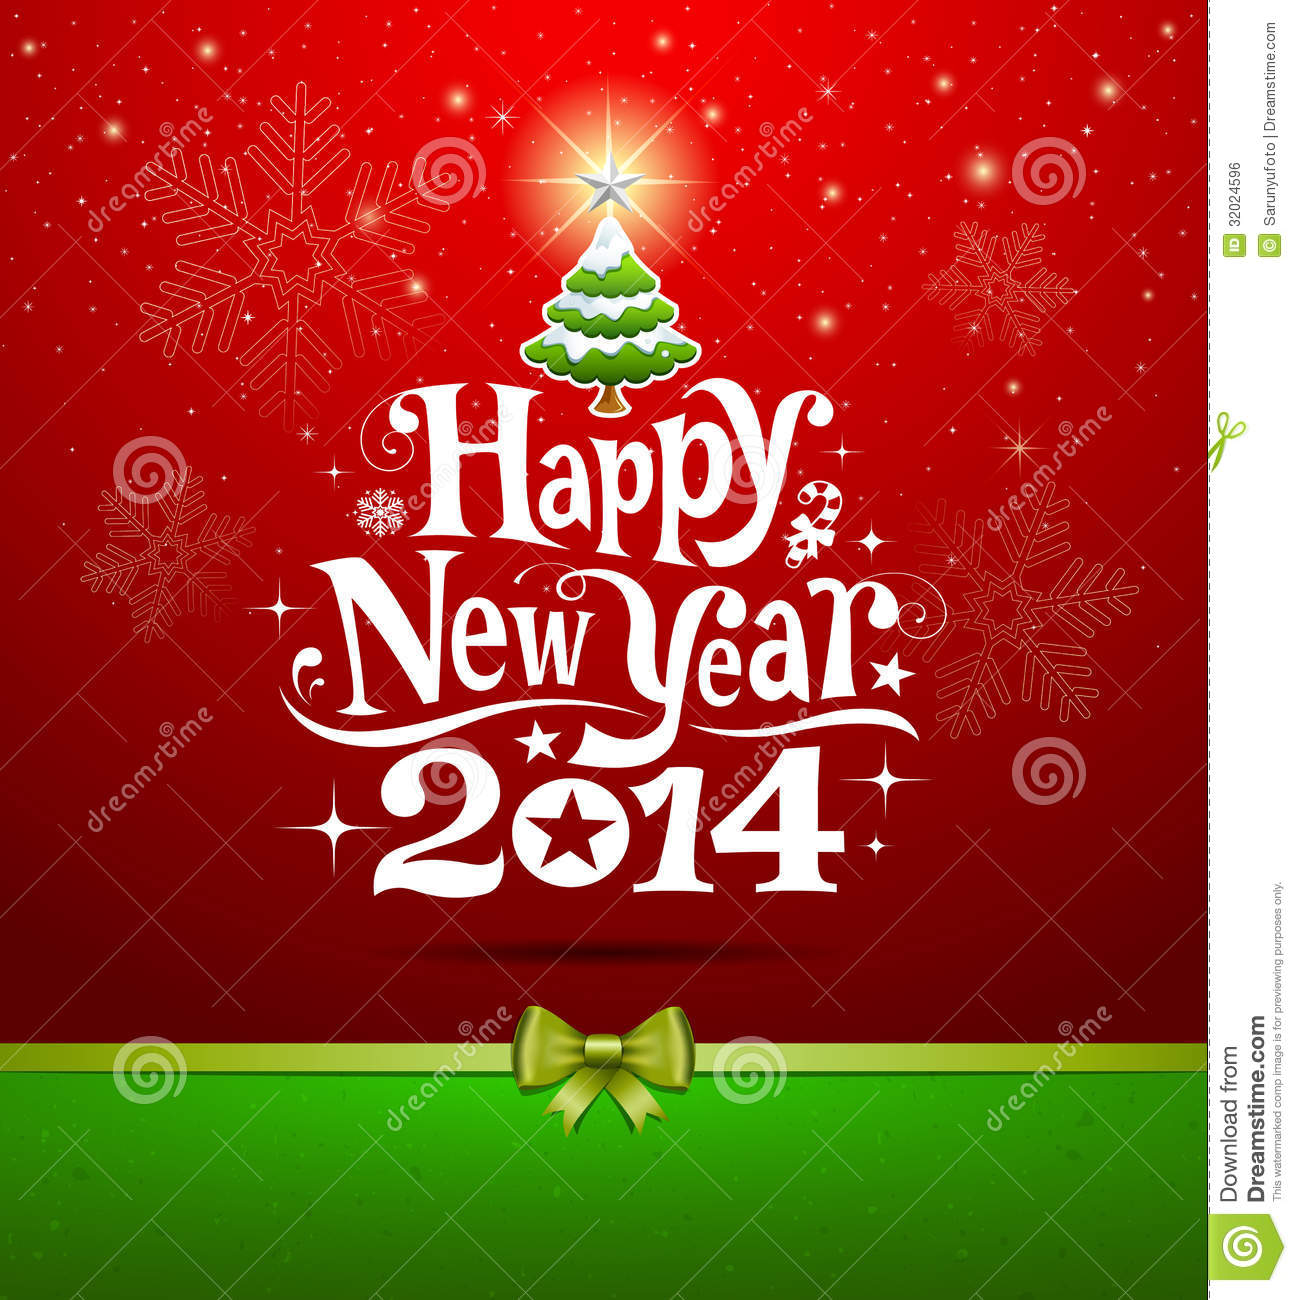 Happy New Year 2014 lettering